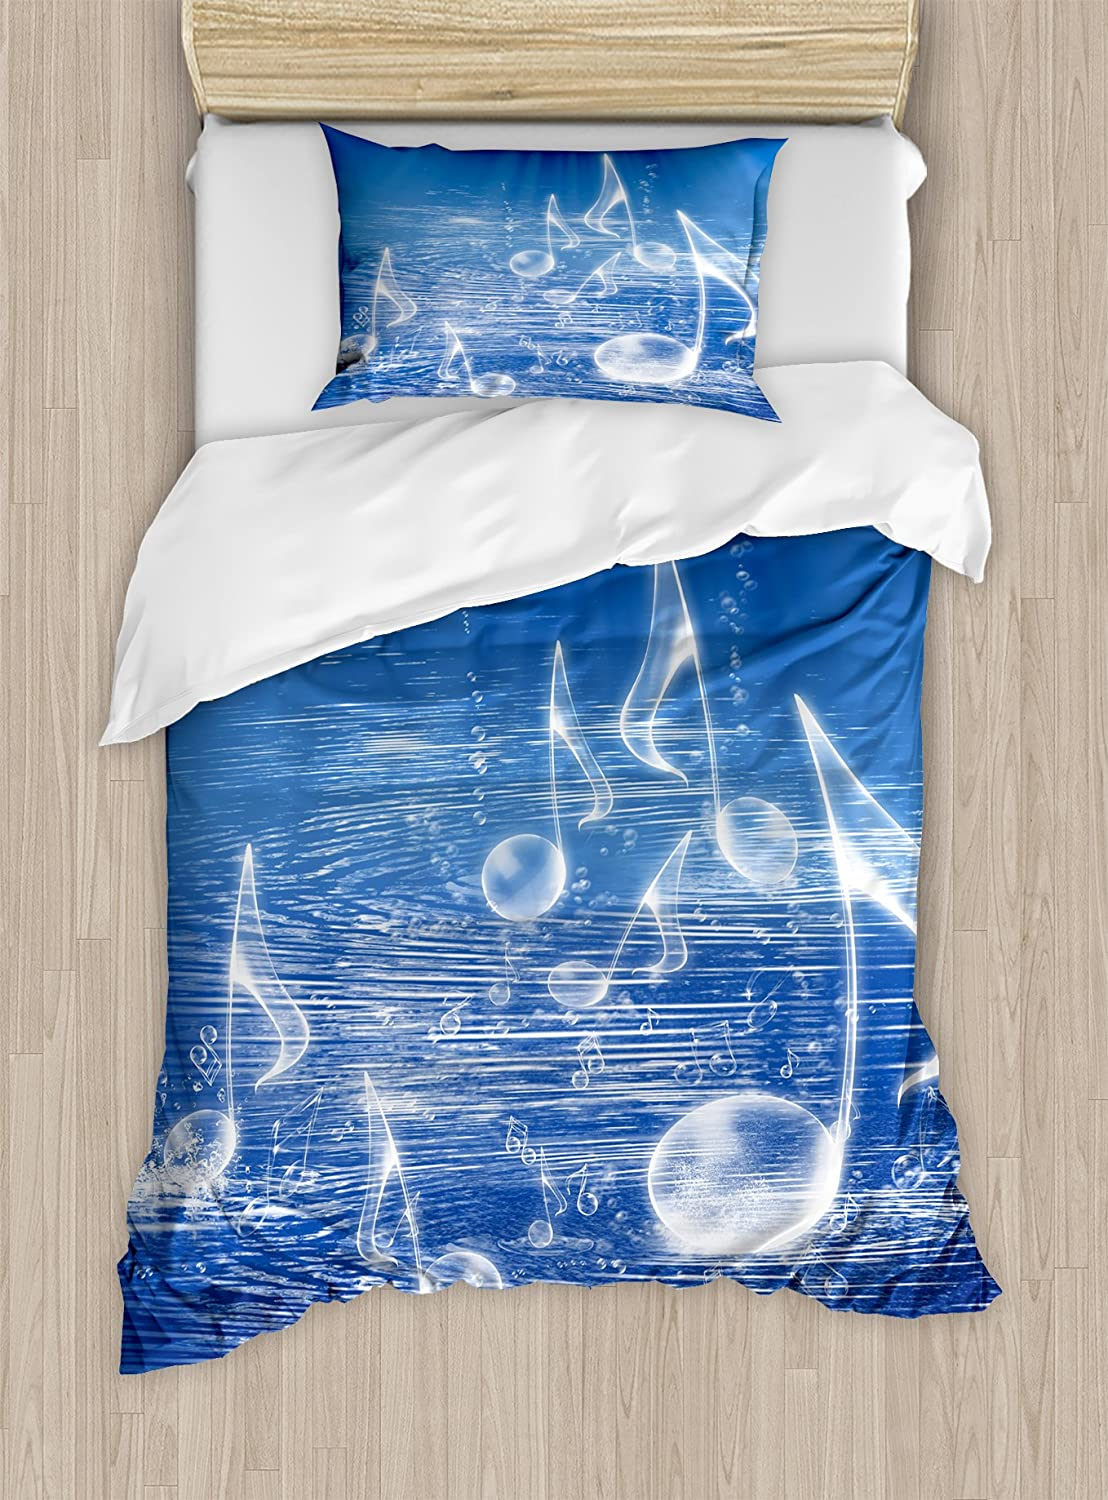 Ambesonne Music Duvet Cover Set, Water with Musical Notes Bubbles Dancing Waves Fantasy Music More Than Real Theme, Decorative 2 Piece Bedding Set with 1 Pillow Sham, Twin Size, Blue White